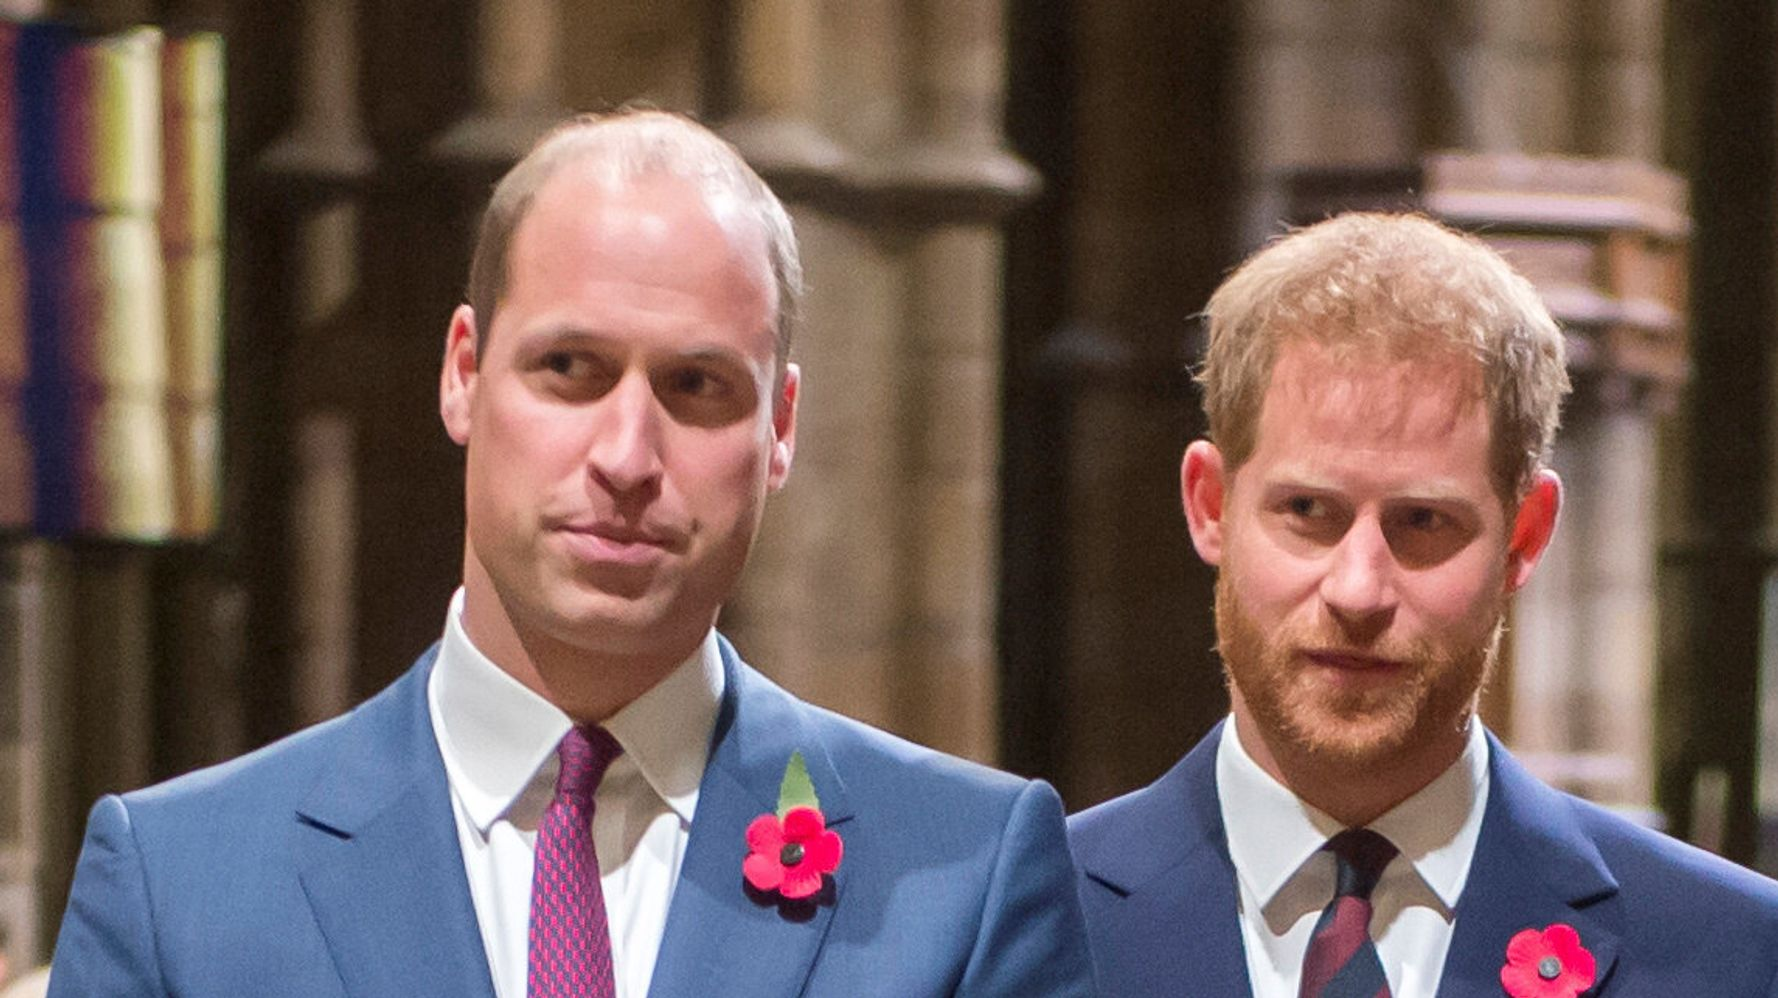 Westlake Legal Group 5e1c702321000054001f6c4a Prince William, Prince Harry Issue Rare Joint Statement To Slam 'Offensive' Story